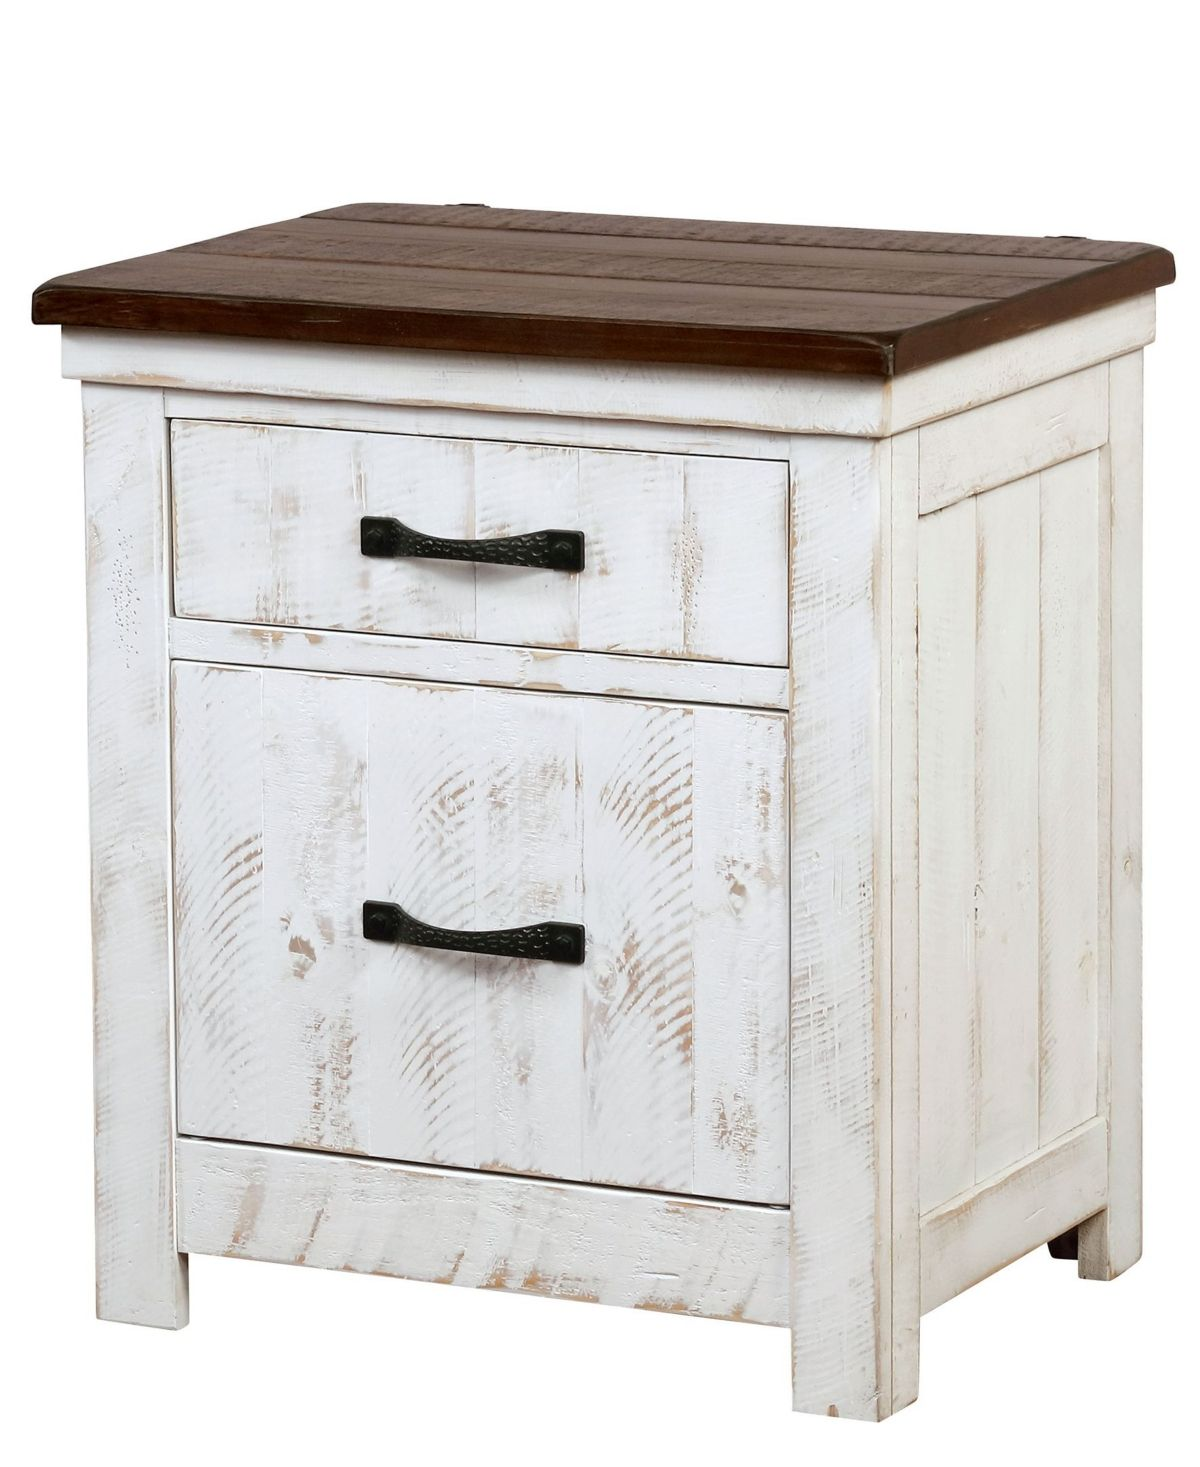 Furniture Of America Willow Crest Distressed White 3 Drawer Nightstand White In 2021 White Distressed Furniture Furniture Of America Small Nightstand